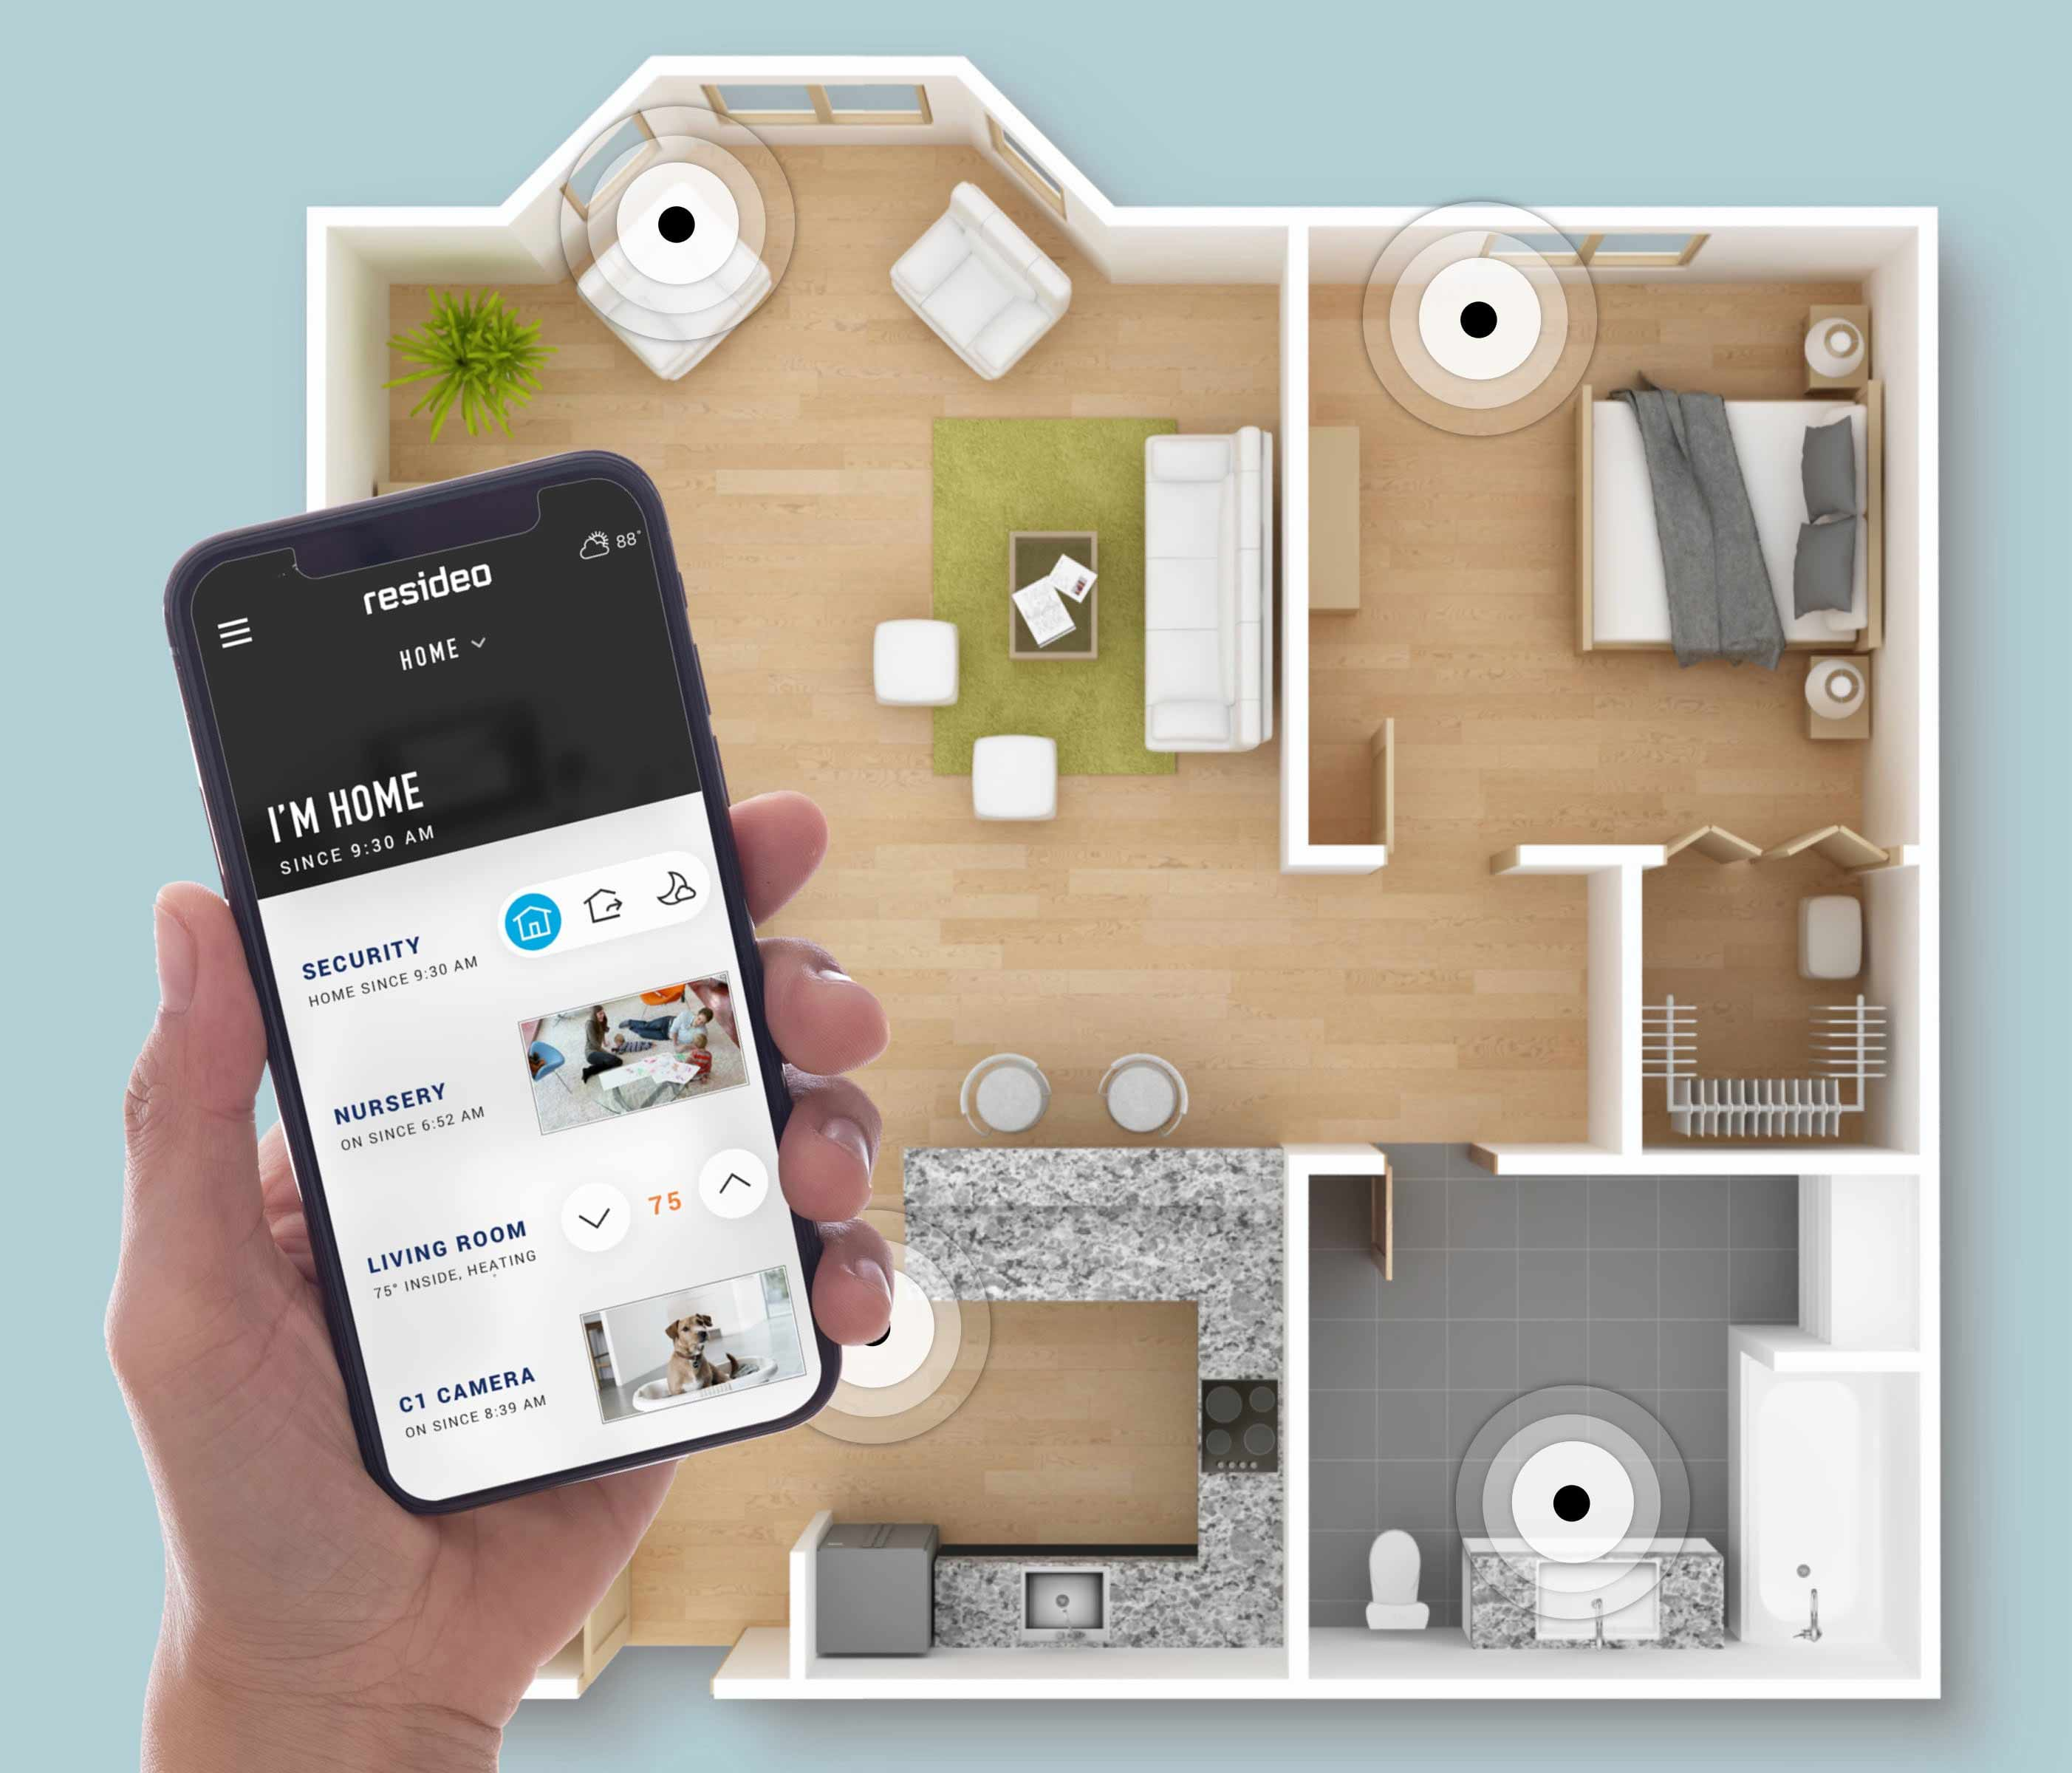 Resideo's smart home devices and systems create a safe & connected home with Honeywell and Buoy products.